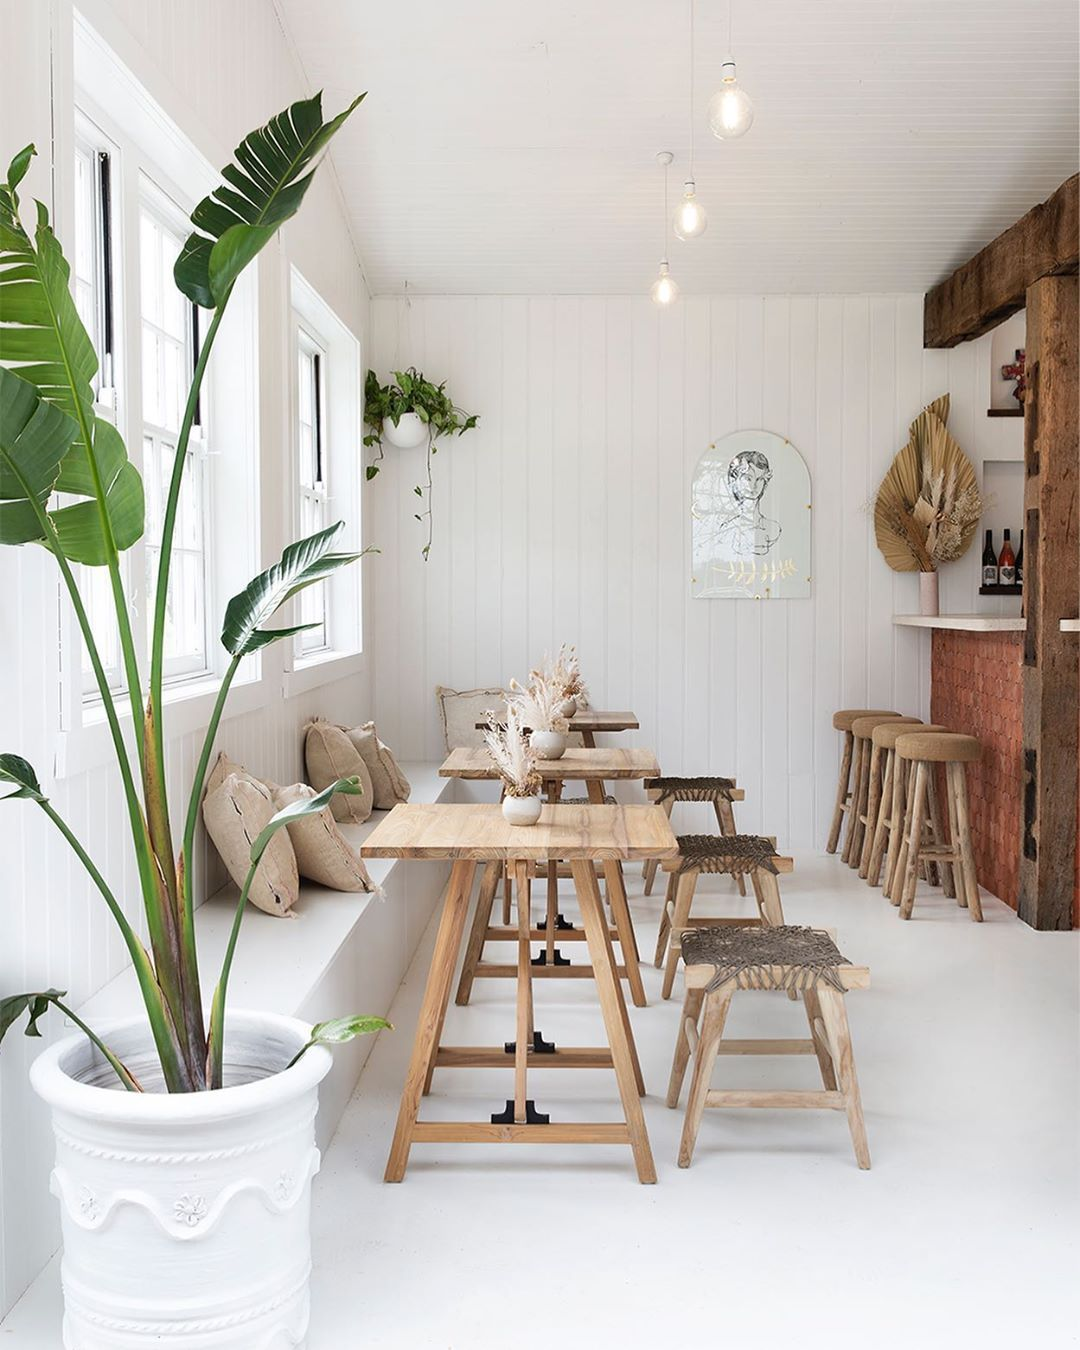 This Stunning Cellar Door Downtherabbitholewines Was Created By The Lovely Elisecook Domenicpalumbo Fea Cafe Interior Cafe Interior Design Interior Design